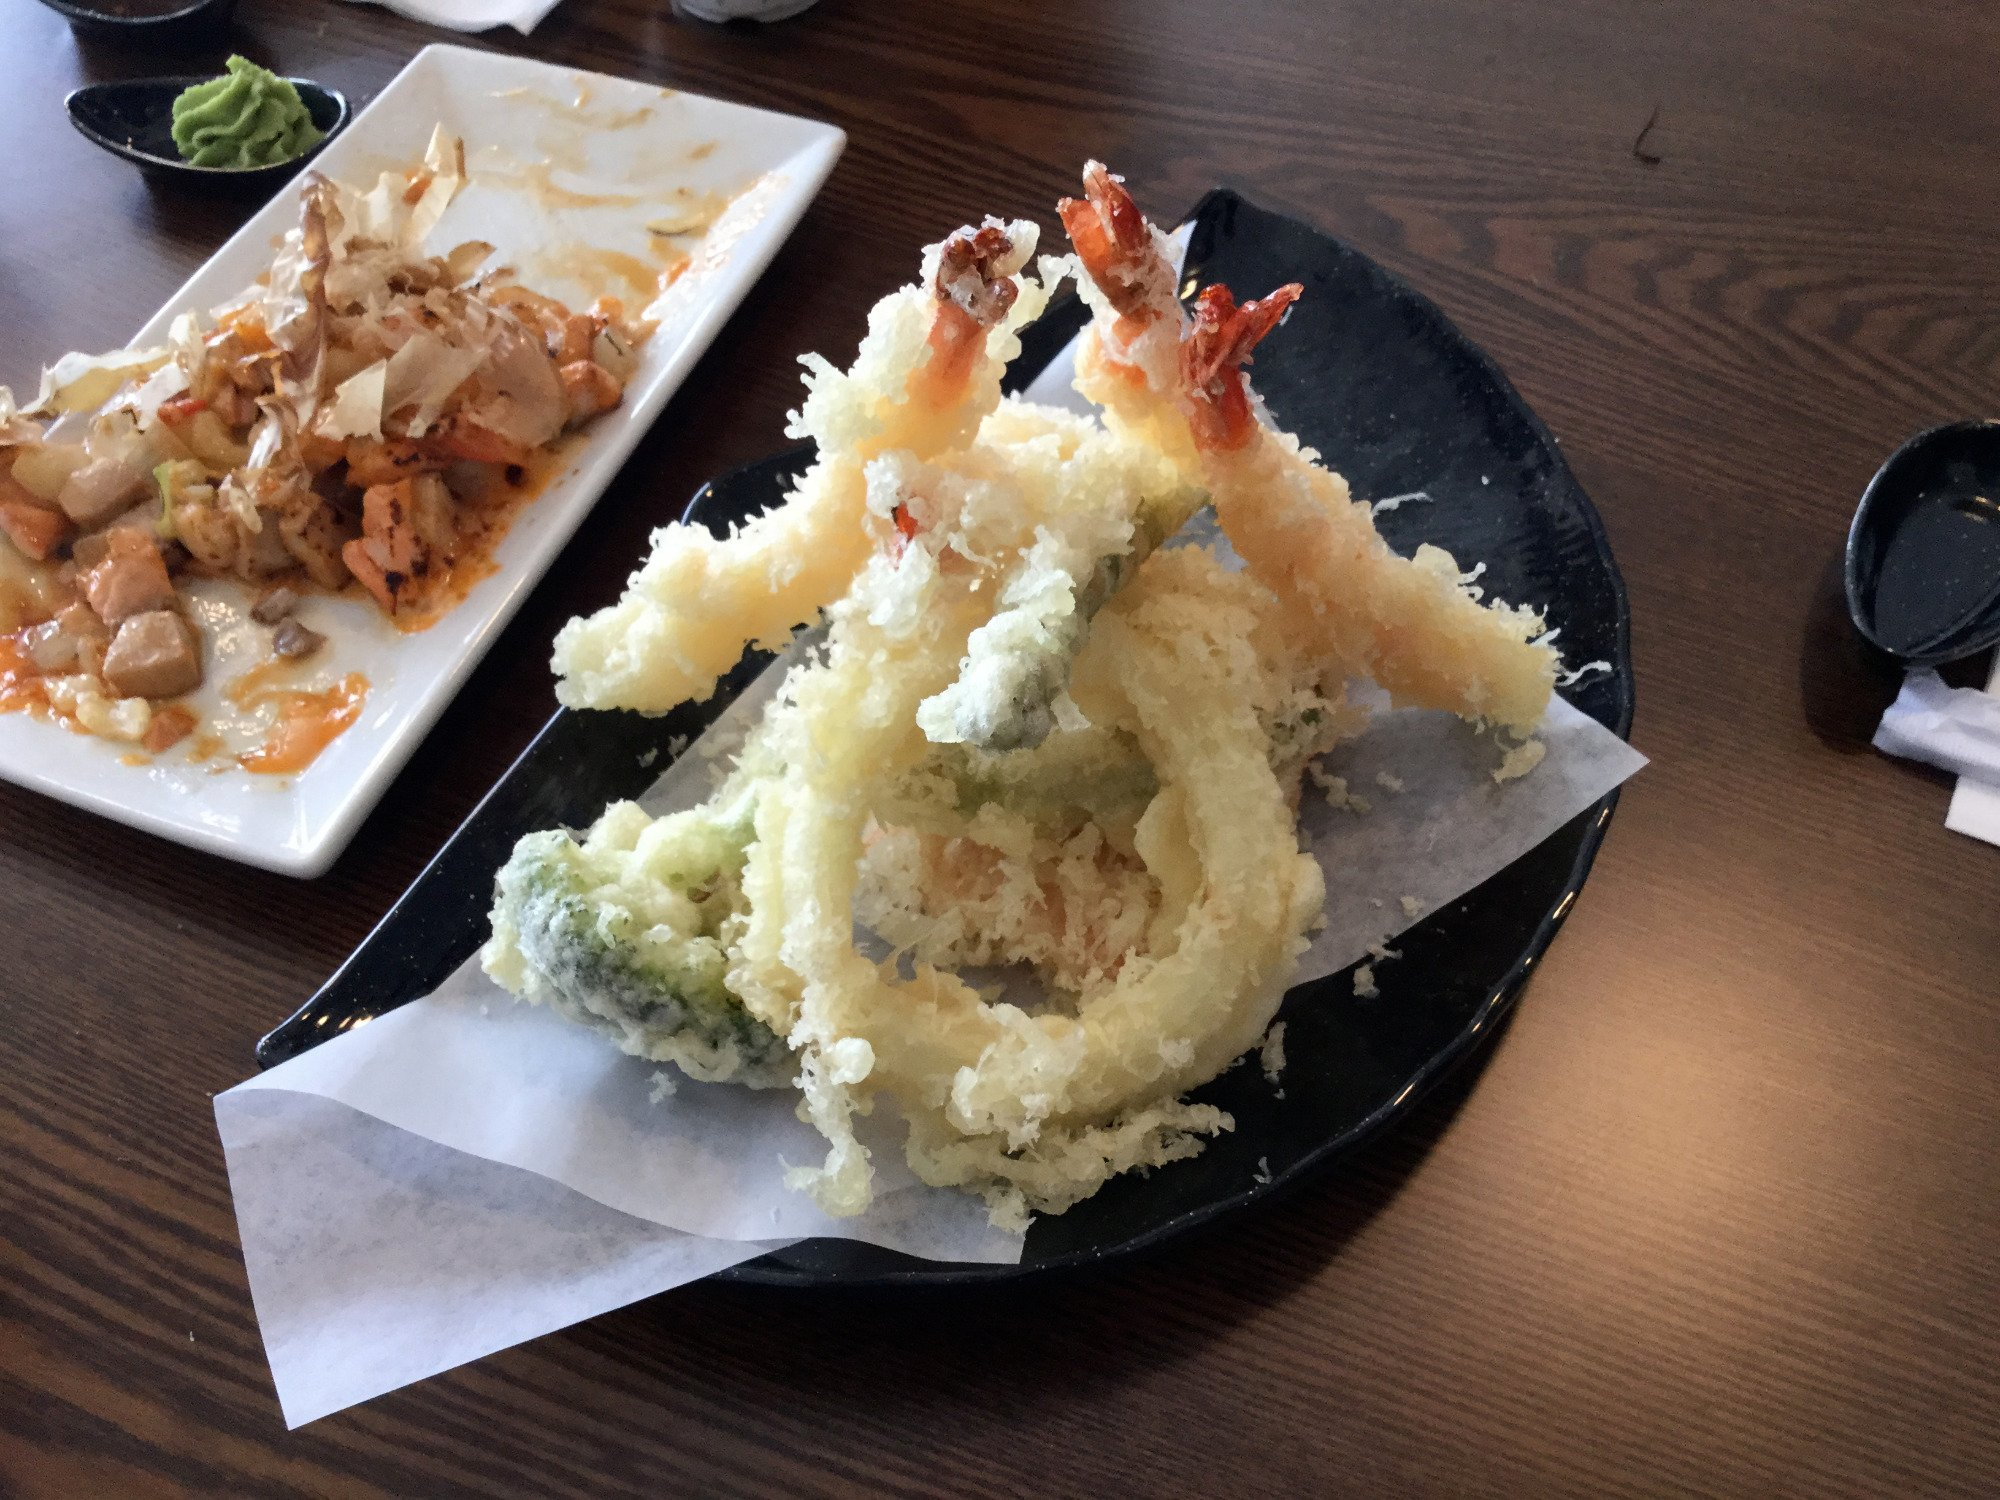 Assorted tempura - prawn and veggies.